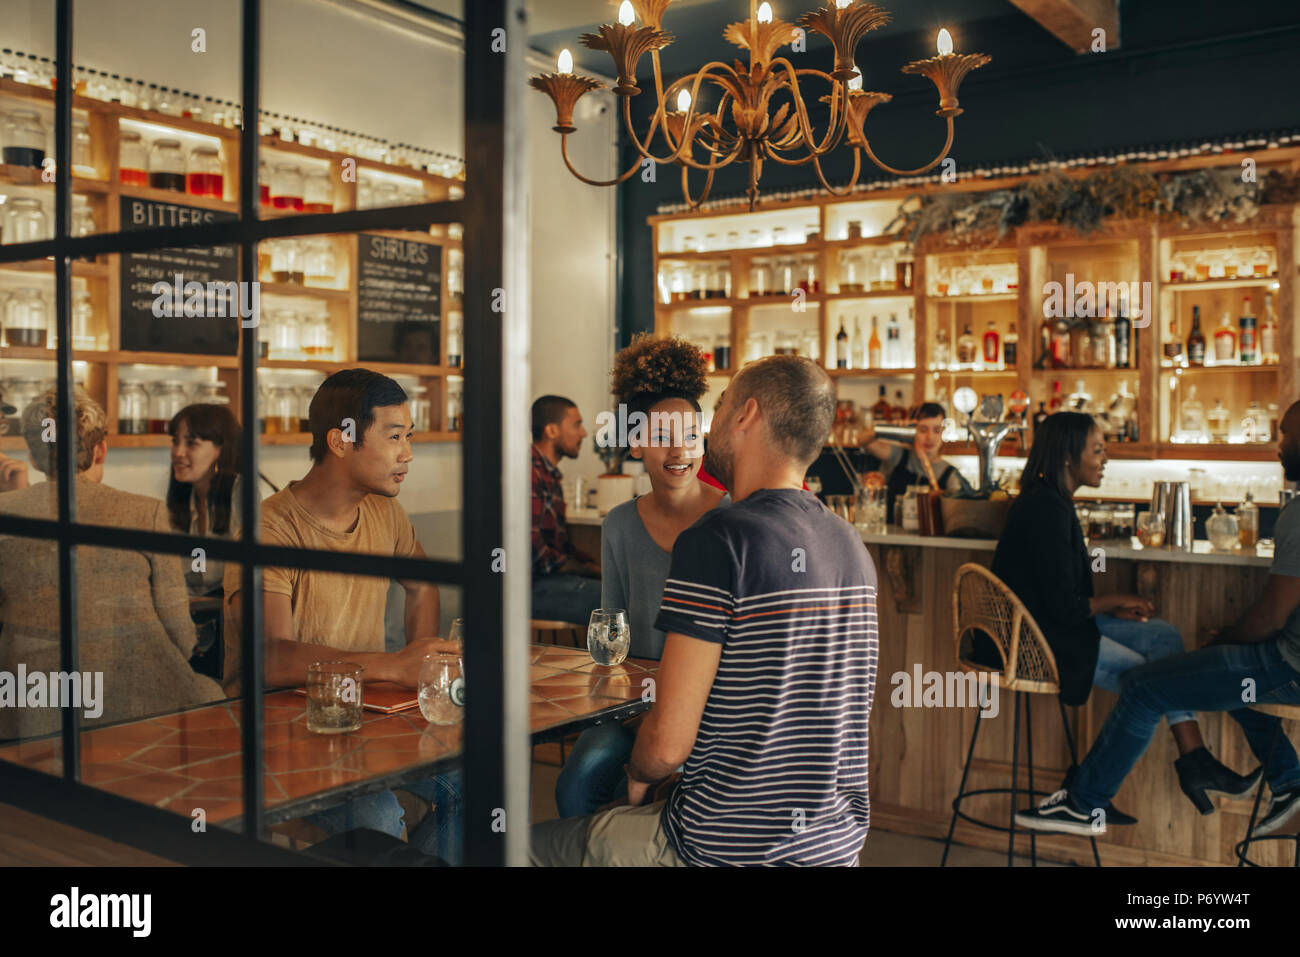 Diverse young friends sitting in a bar having drinks together - Stock Image